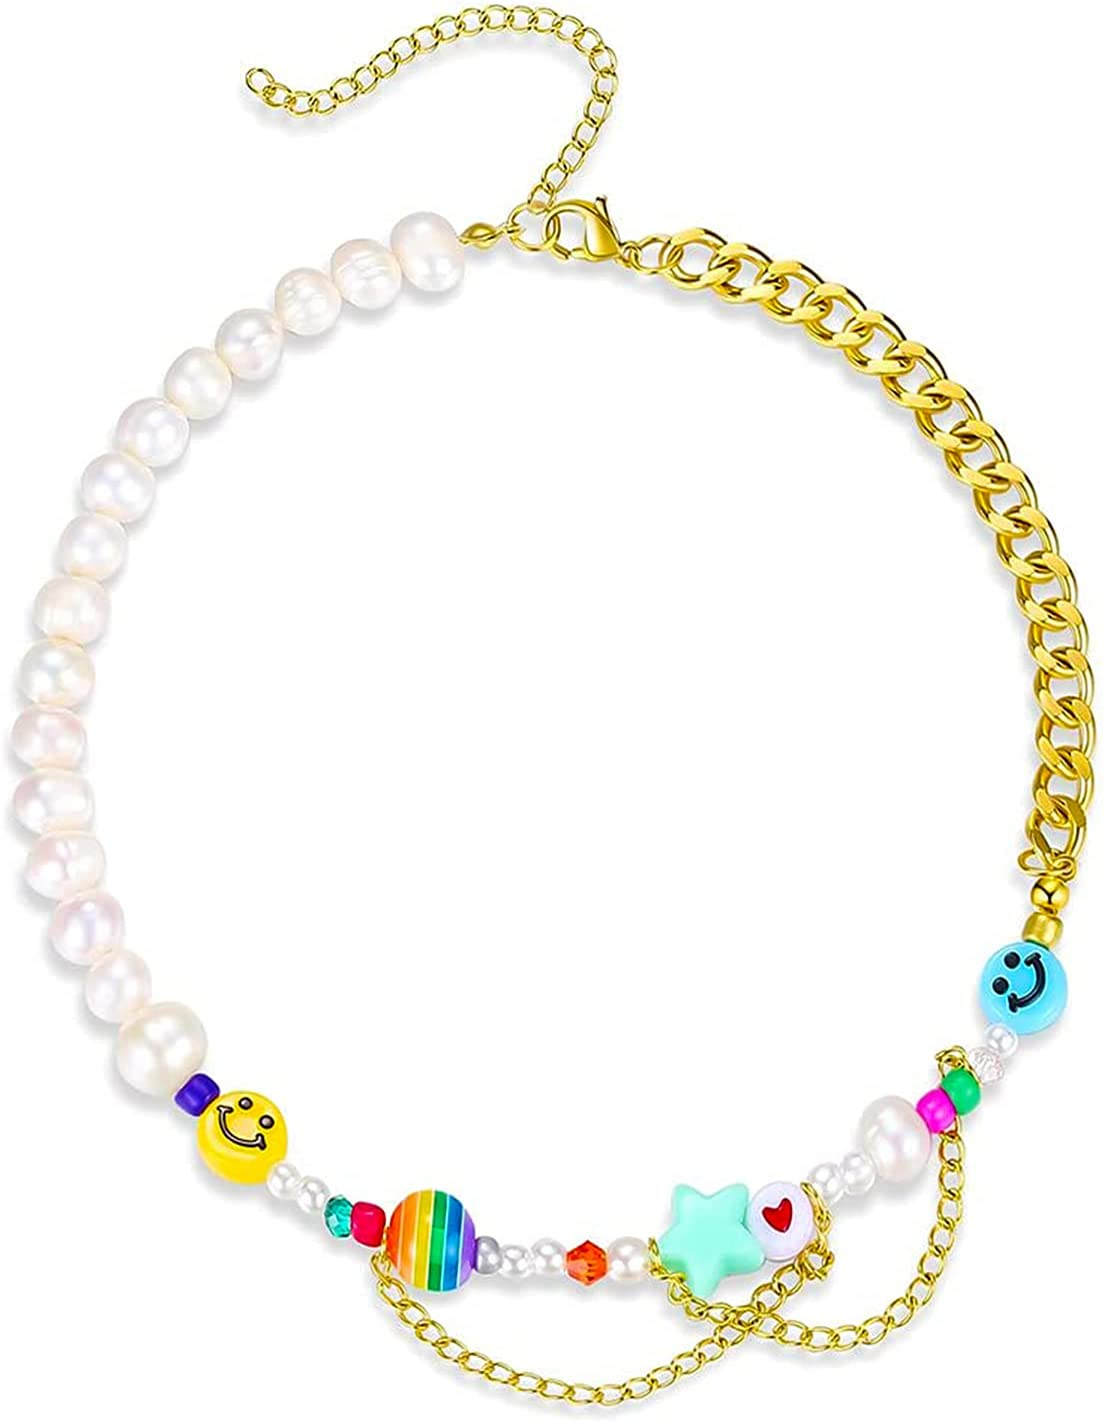 Adilamny Happy Go Lucky Necklace Y2k Smiley Face Yin Yang Colorful Pearl Beads Necklace Handmade Bohemia Charm Choker Necklace for Women Girls